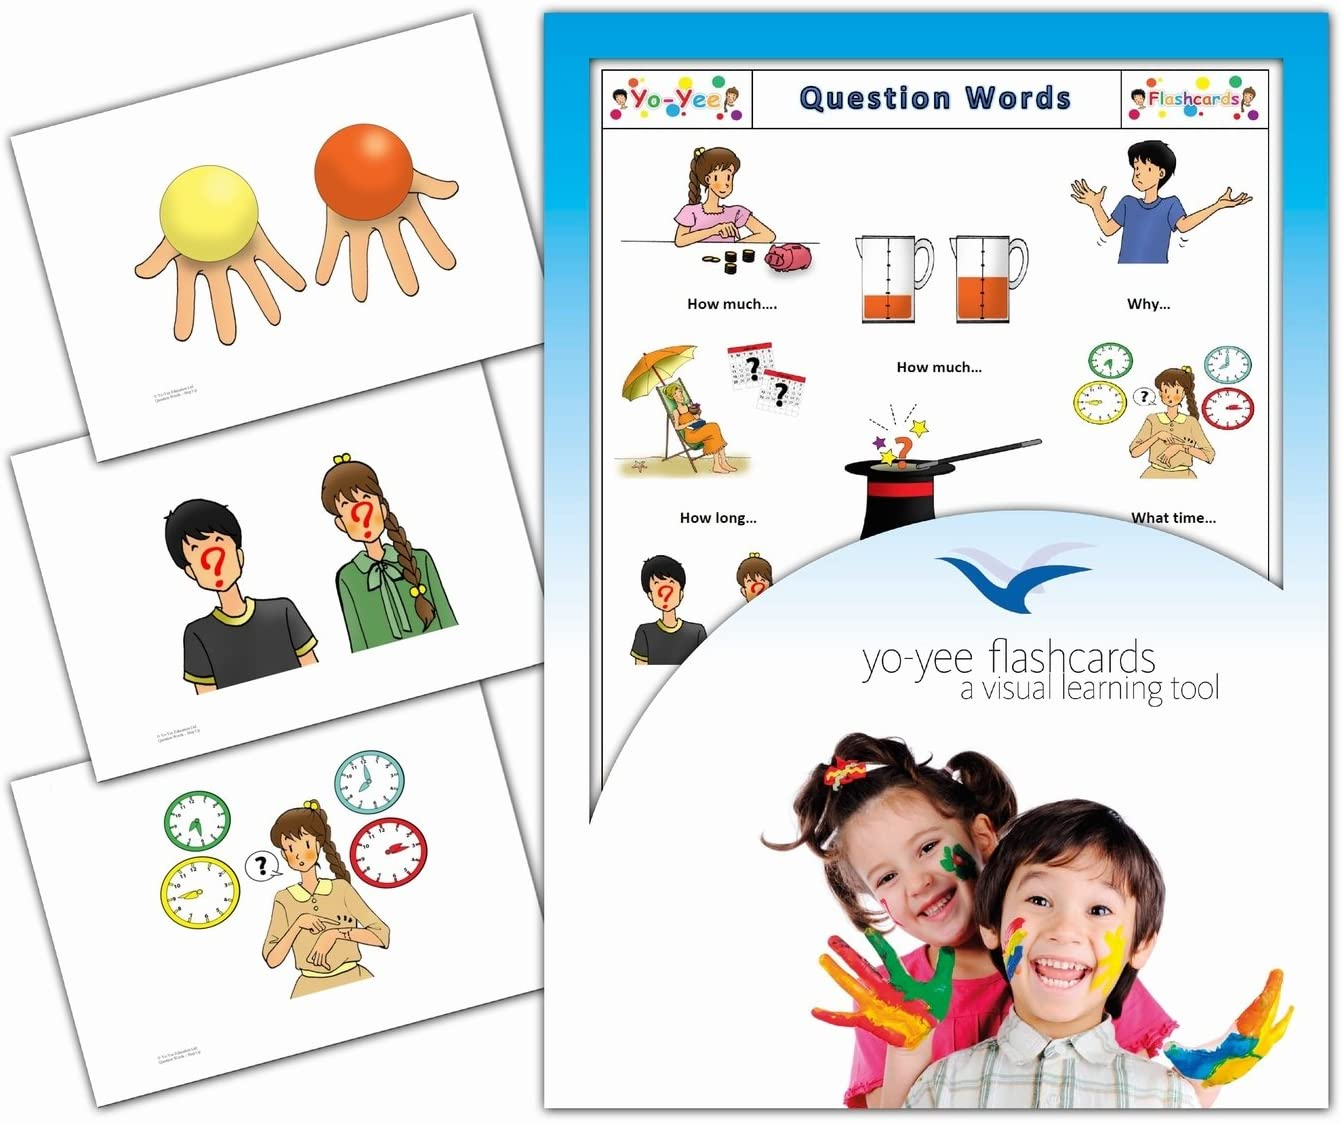 Yo-Yee Flashcards - Question and Interrogative Words Flash Cards - Vocabulary Picture Cards for Toddlers, Kids, Children and Adults